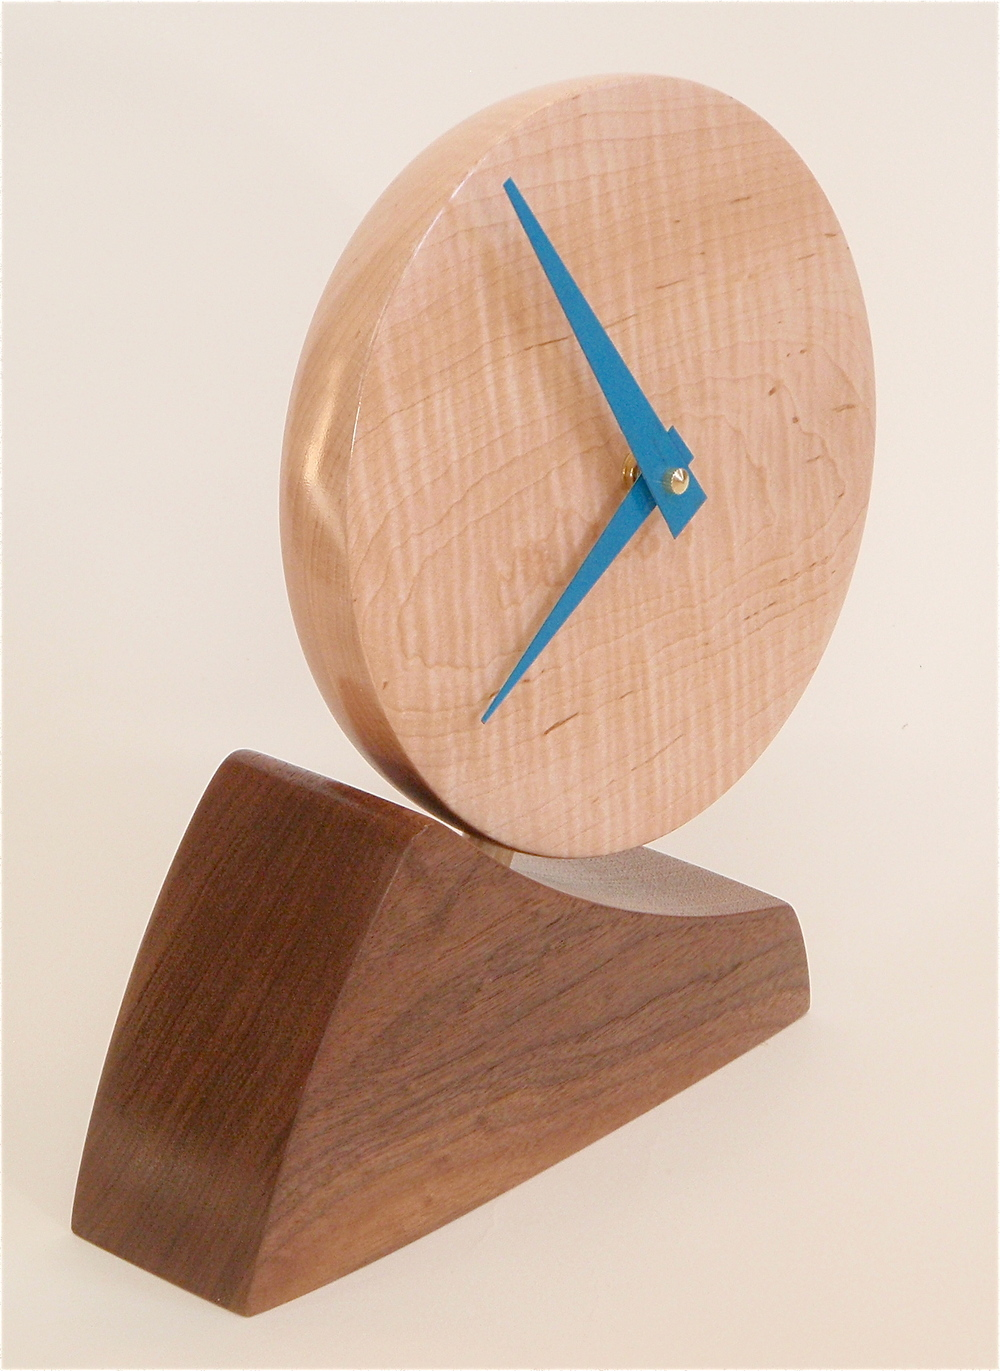 Adjustable desk clock 04